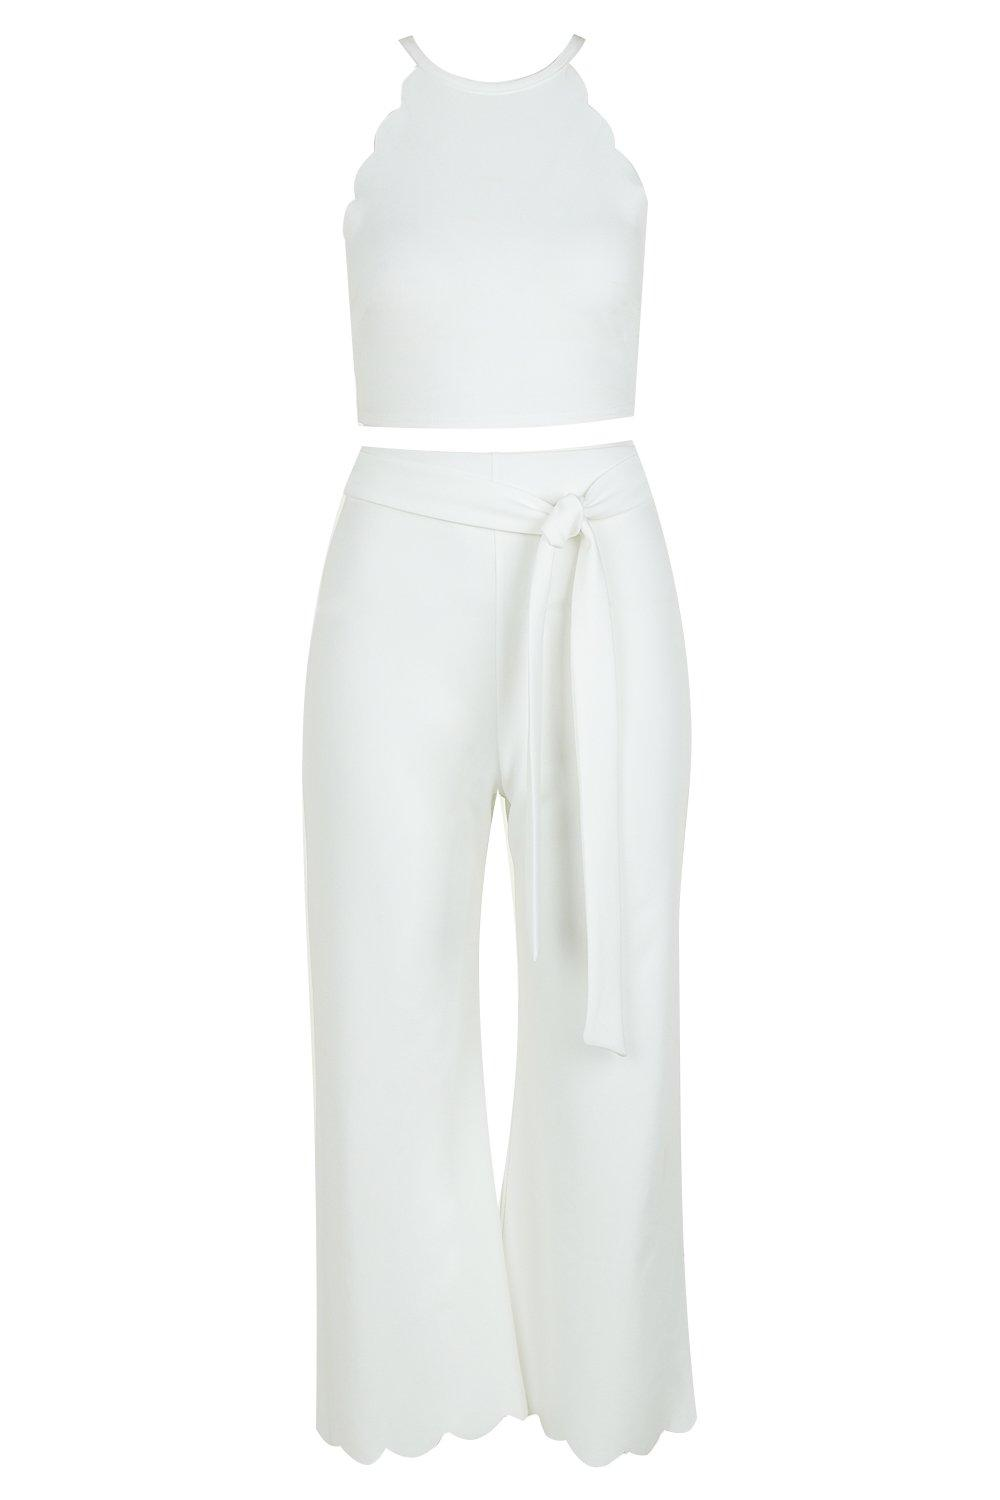 Hem white amp; Scallop Co Culotte Top ord 4nYFC